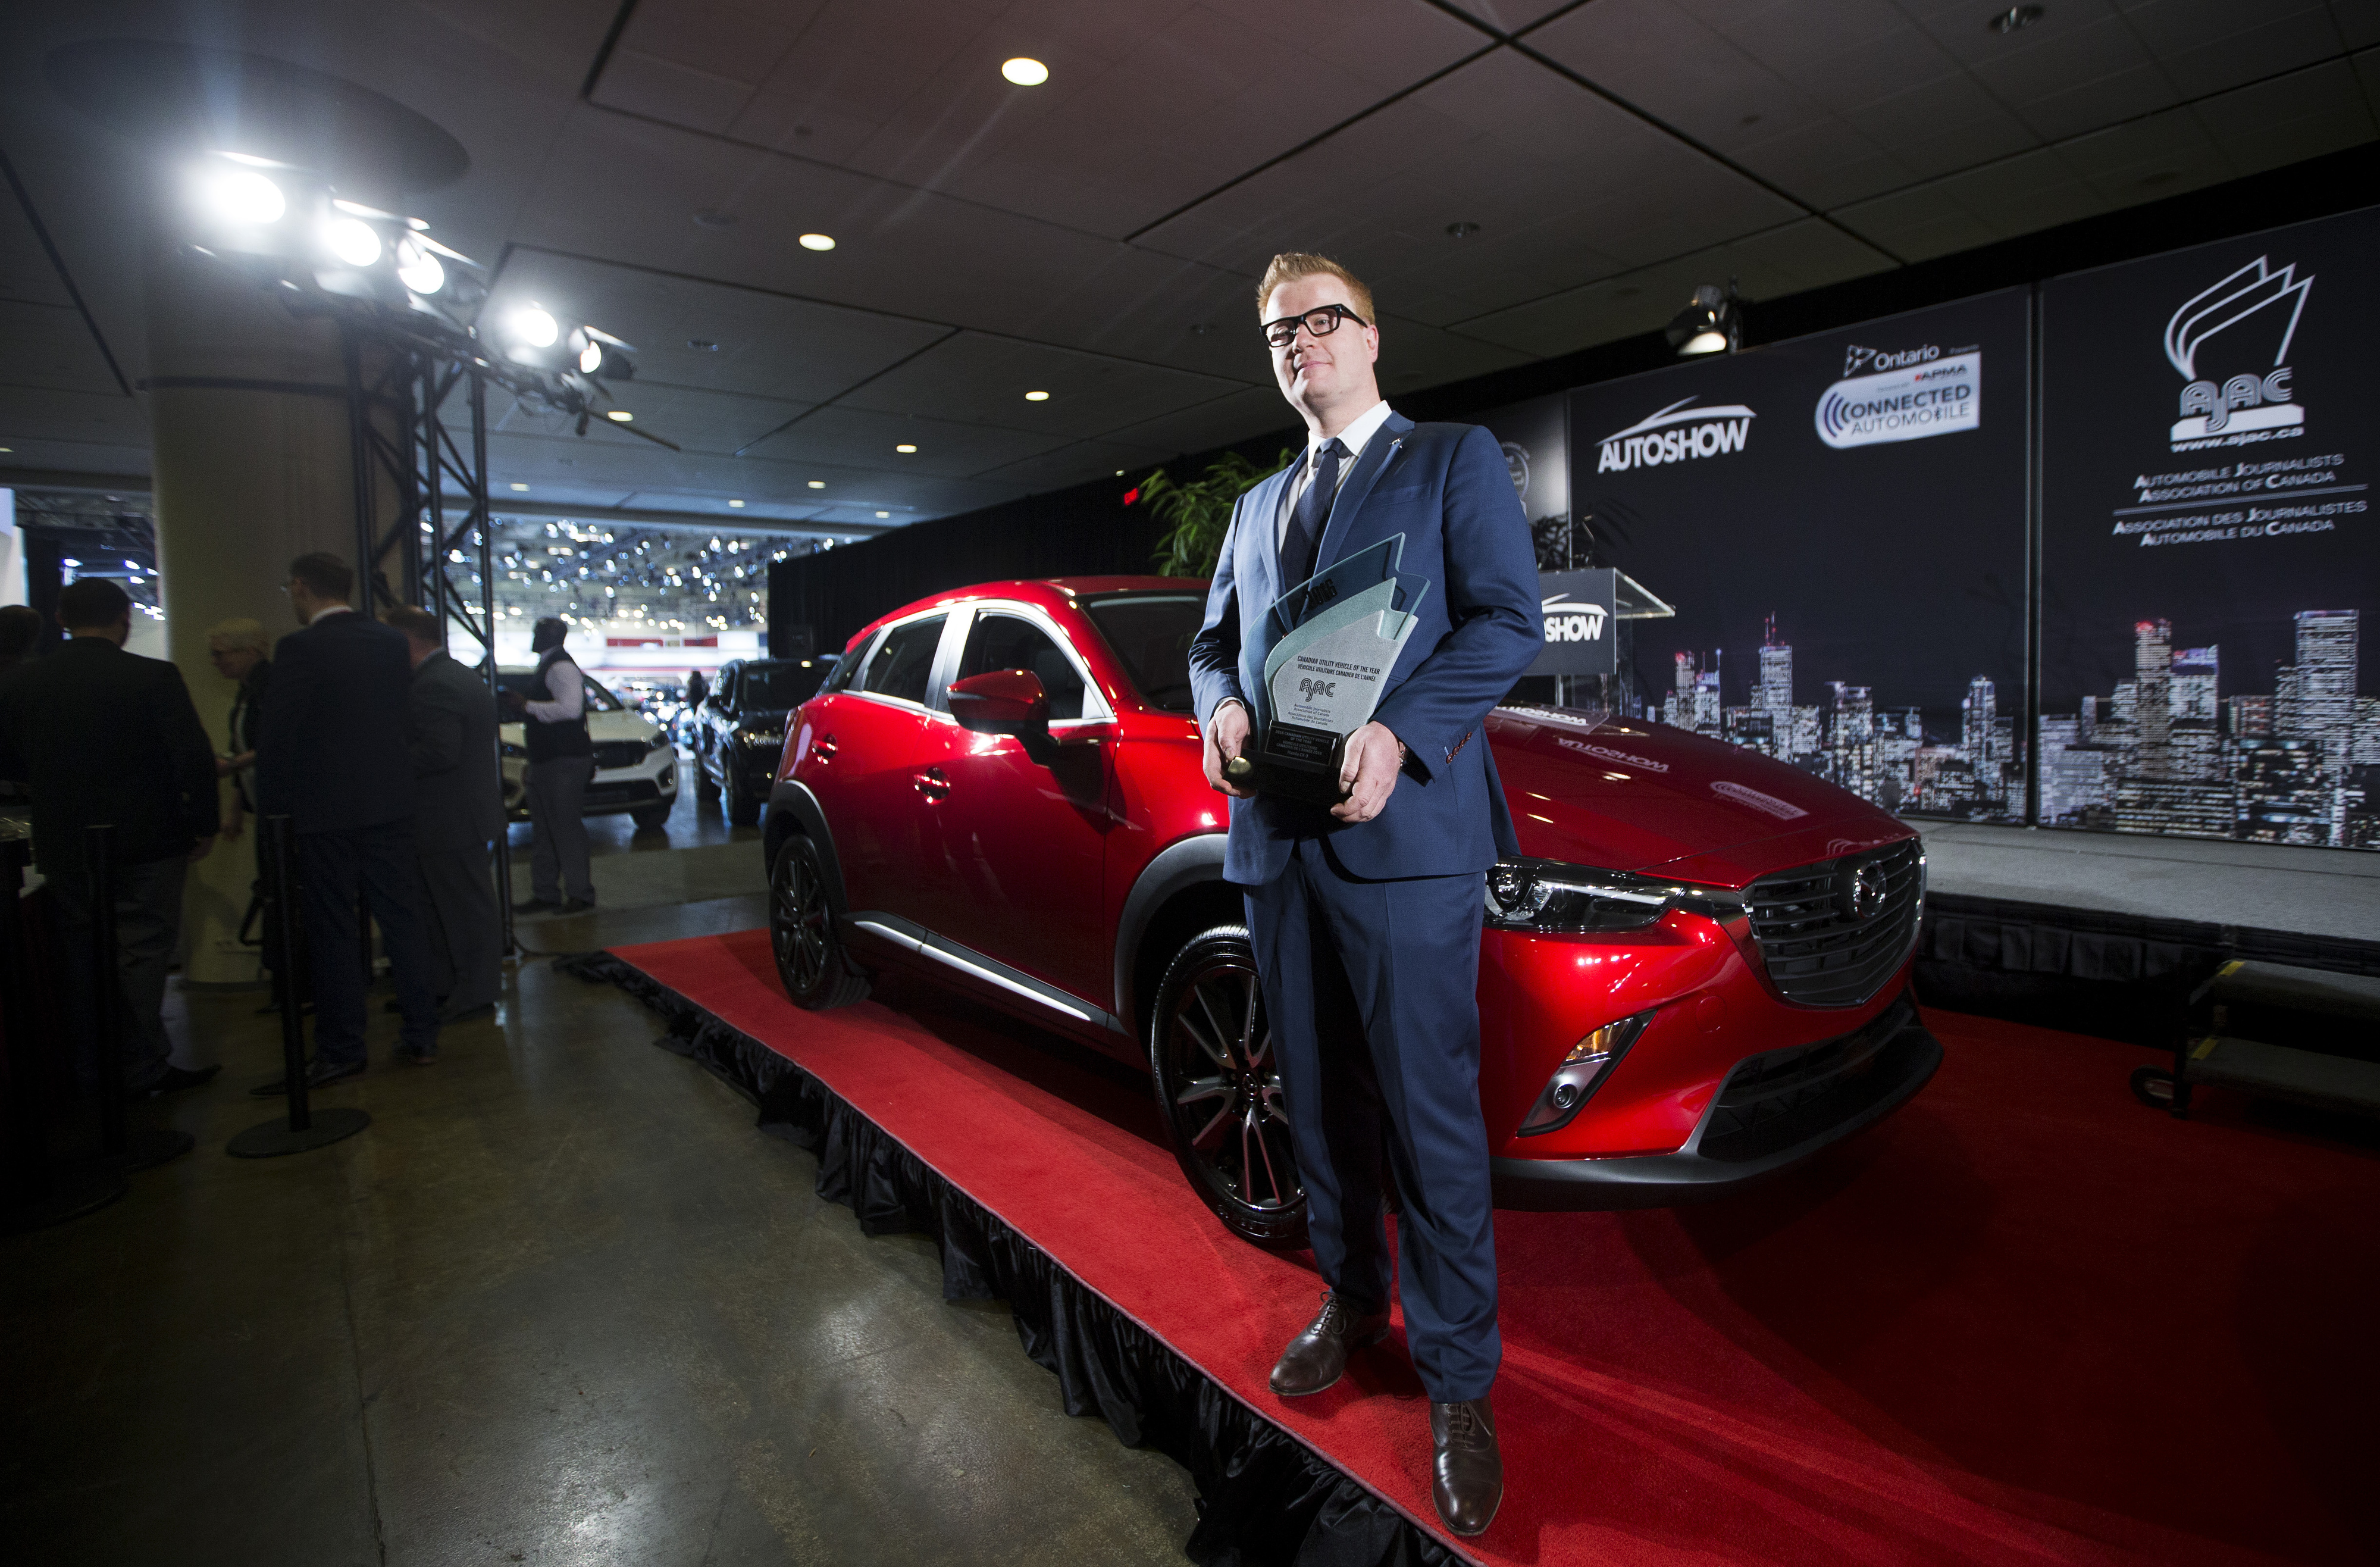 Vincent Reboul, Marketing Director at Mazda Canada Inc.left, poses for a photo with the Mazda CX-3 claimed top honours when the utility vehicle was declared the 2016 Canadian Utility of the Year by the Automobile Journalists Association of Canada (AJAC).  (Photos By: Michelle Siu)